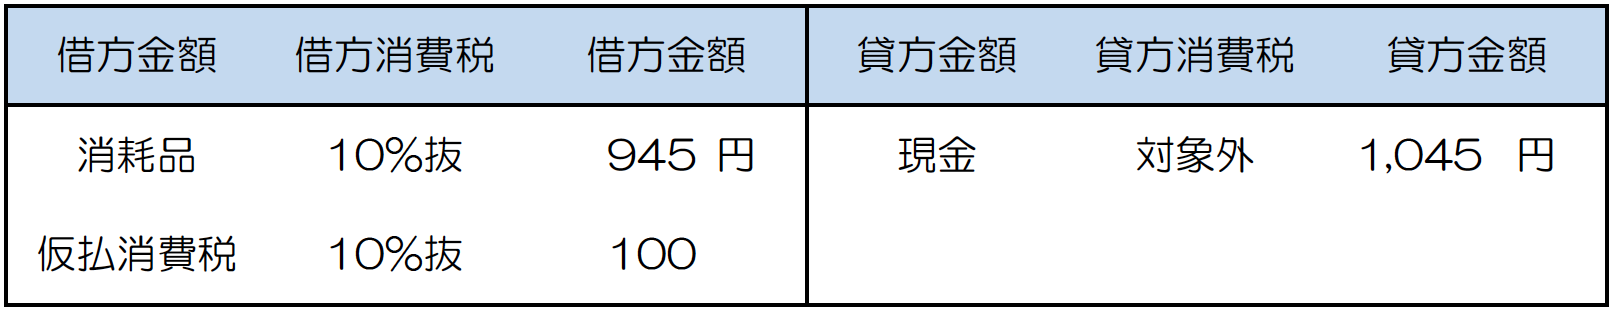 20191005150830921.png